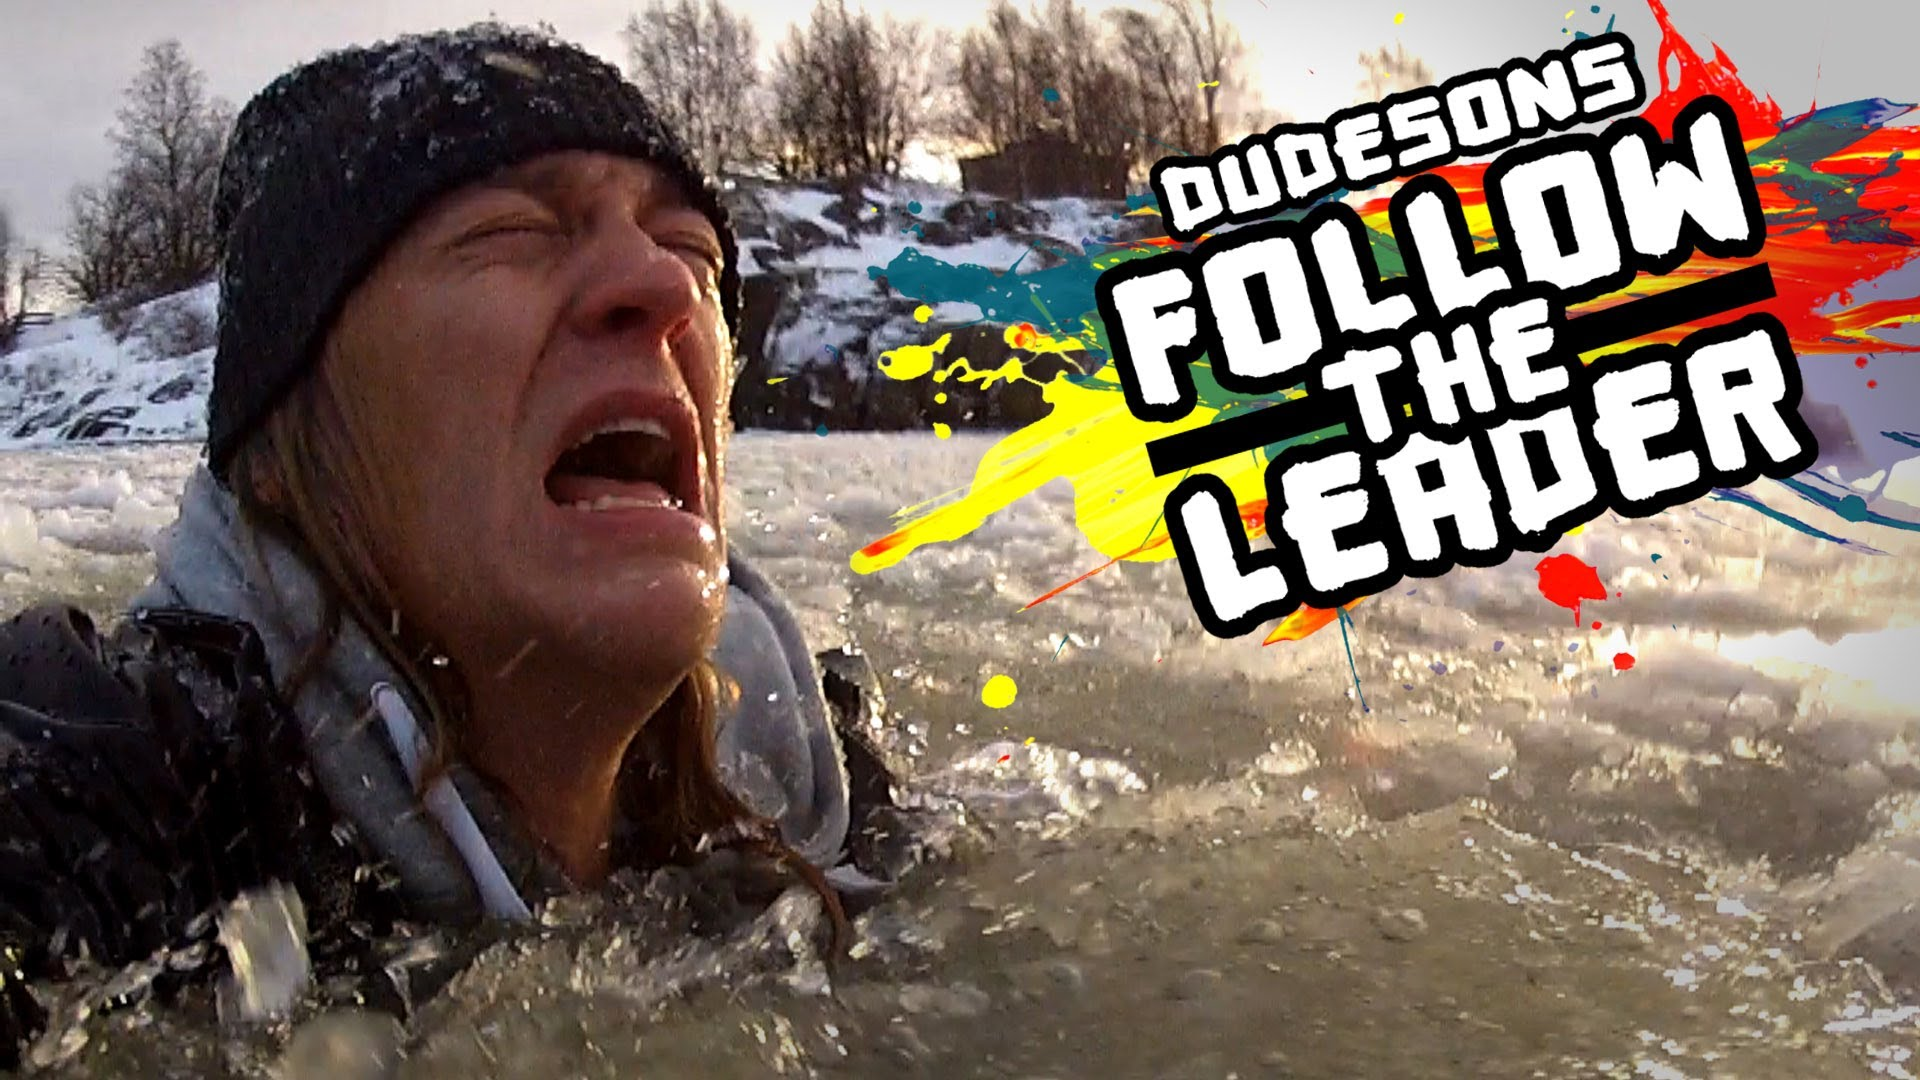 FOLLOW-THE-LEADER-Ep-meters-south-DUDESONS-wallpaper-wp5206627